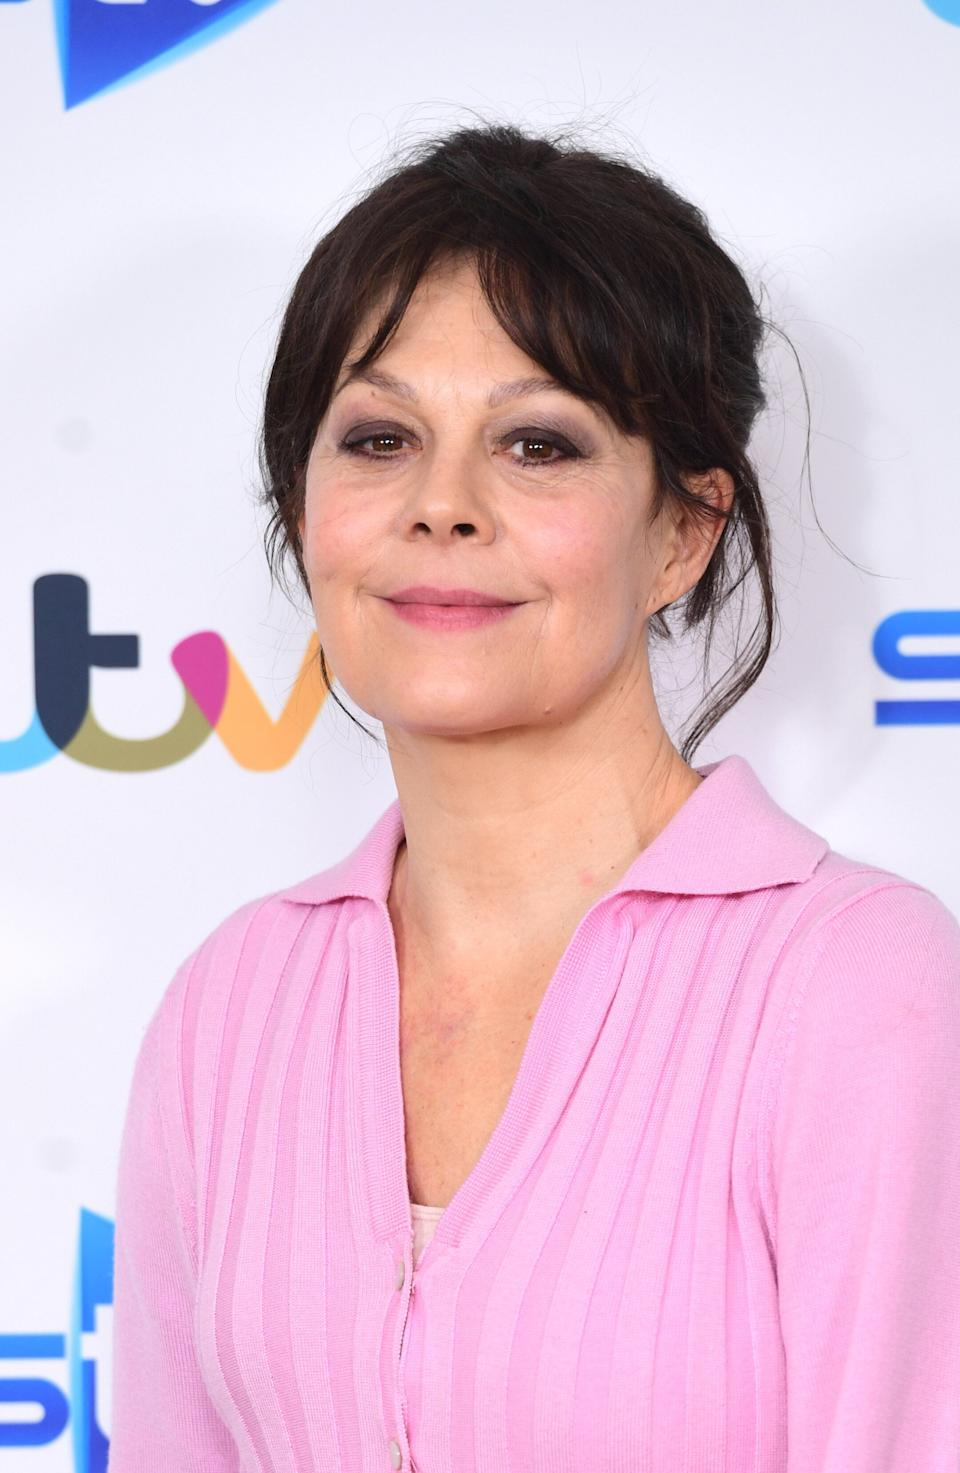 Helen McCrory (Photo: Ian West - PA Images via Getty Images)